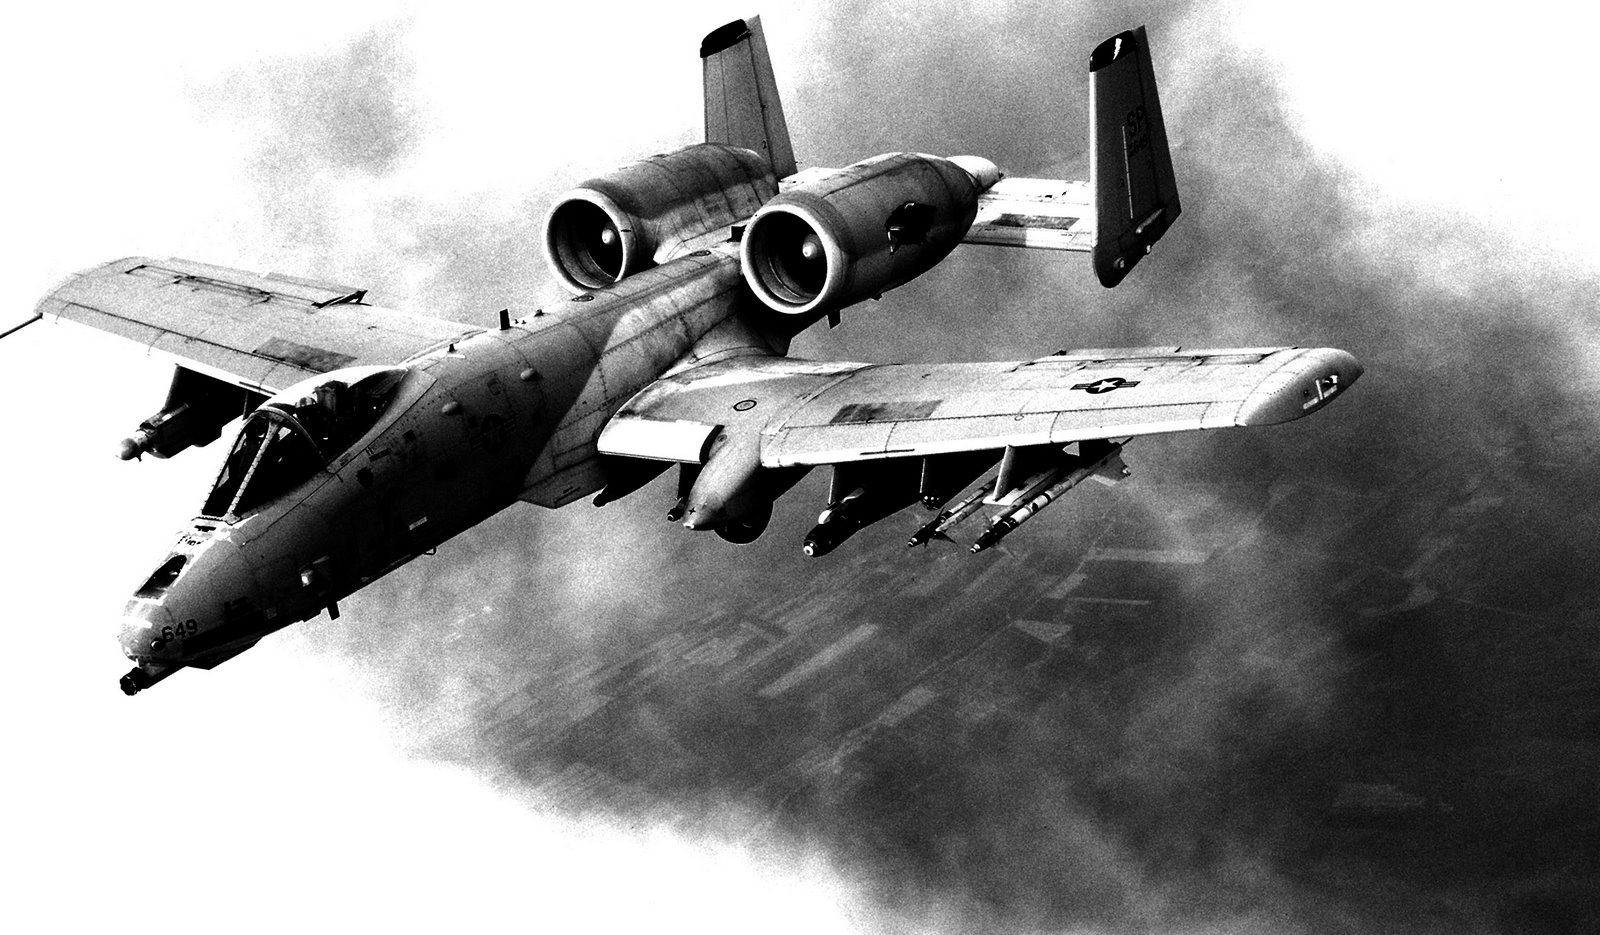 More money won't save the A-10